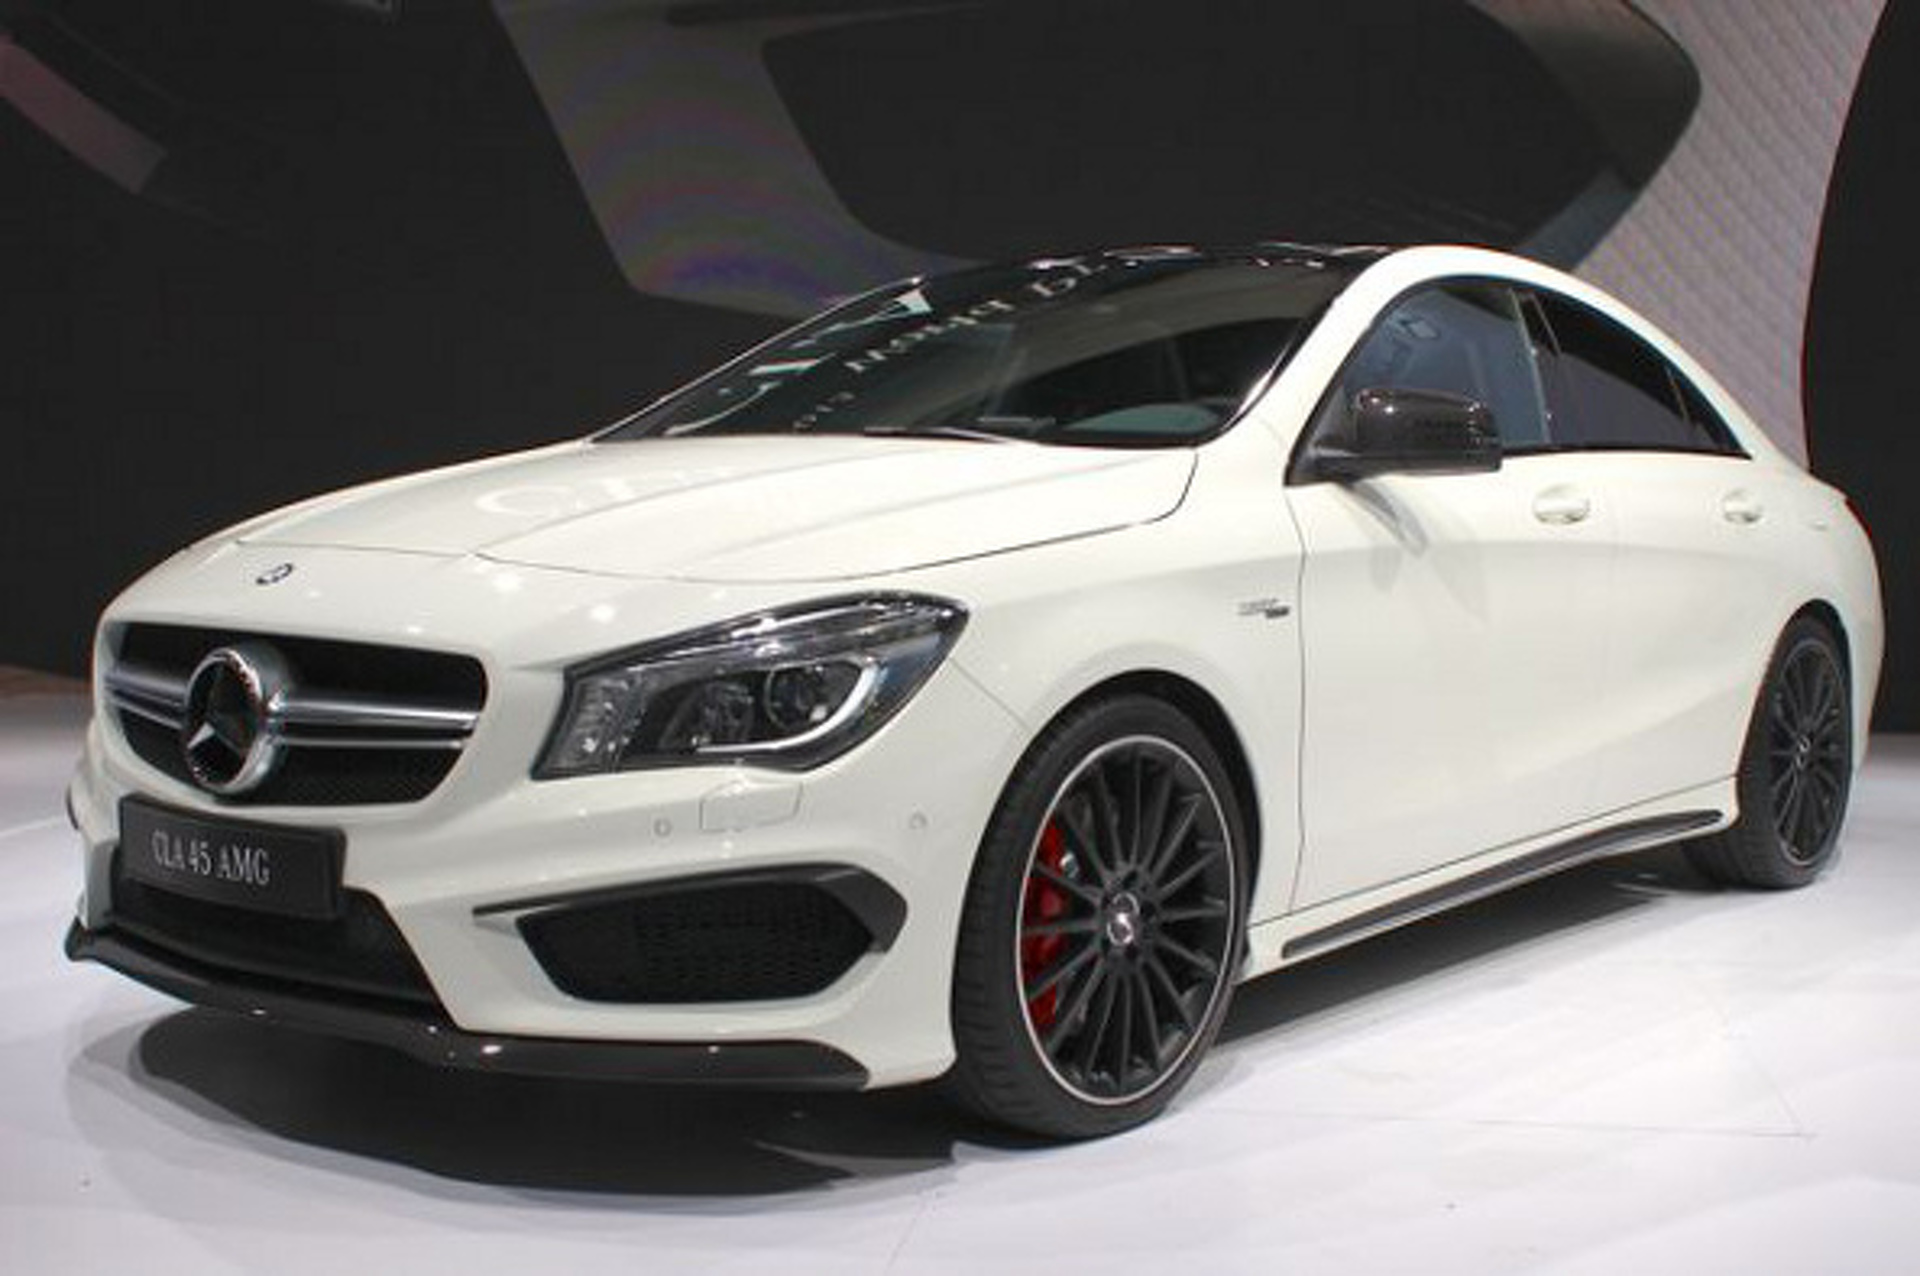 2014 Mercedes-Benz CLA45 AMG is Small, Pretty and Powerful